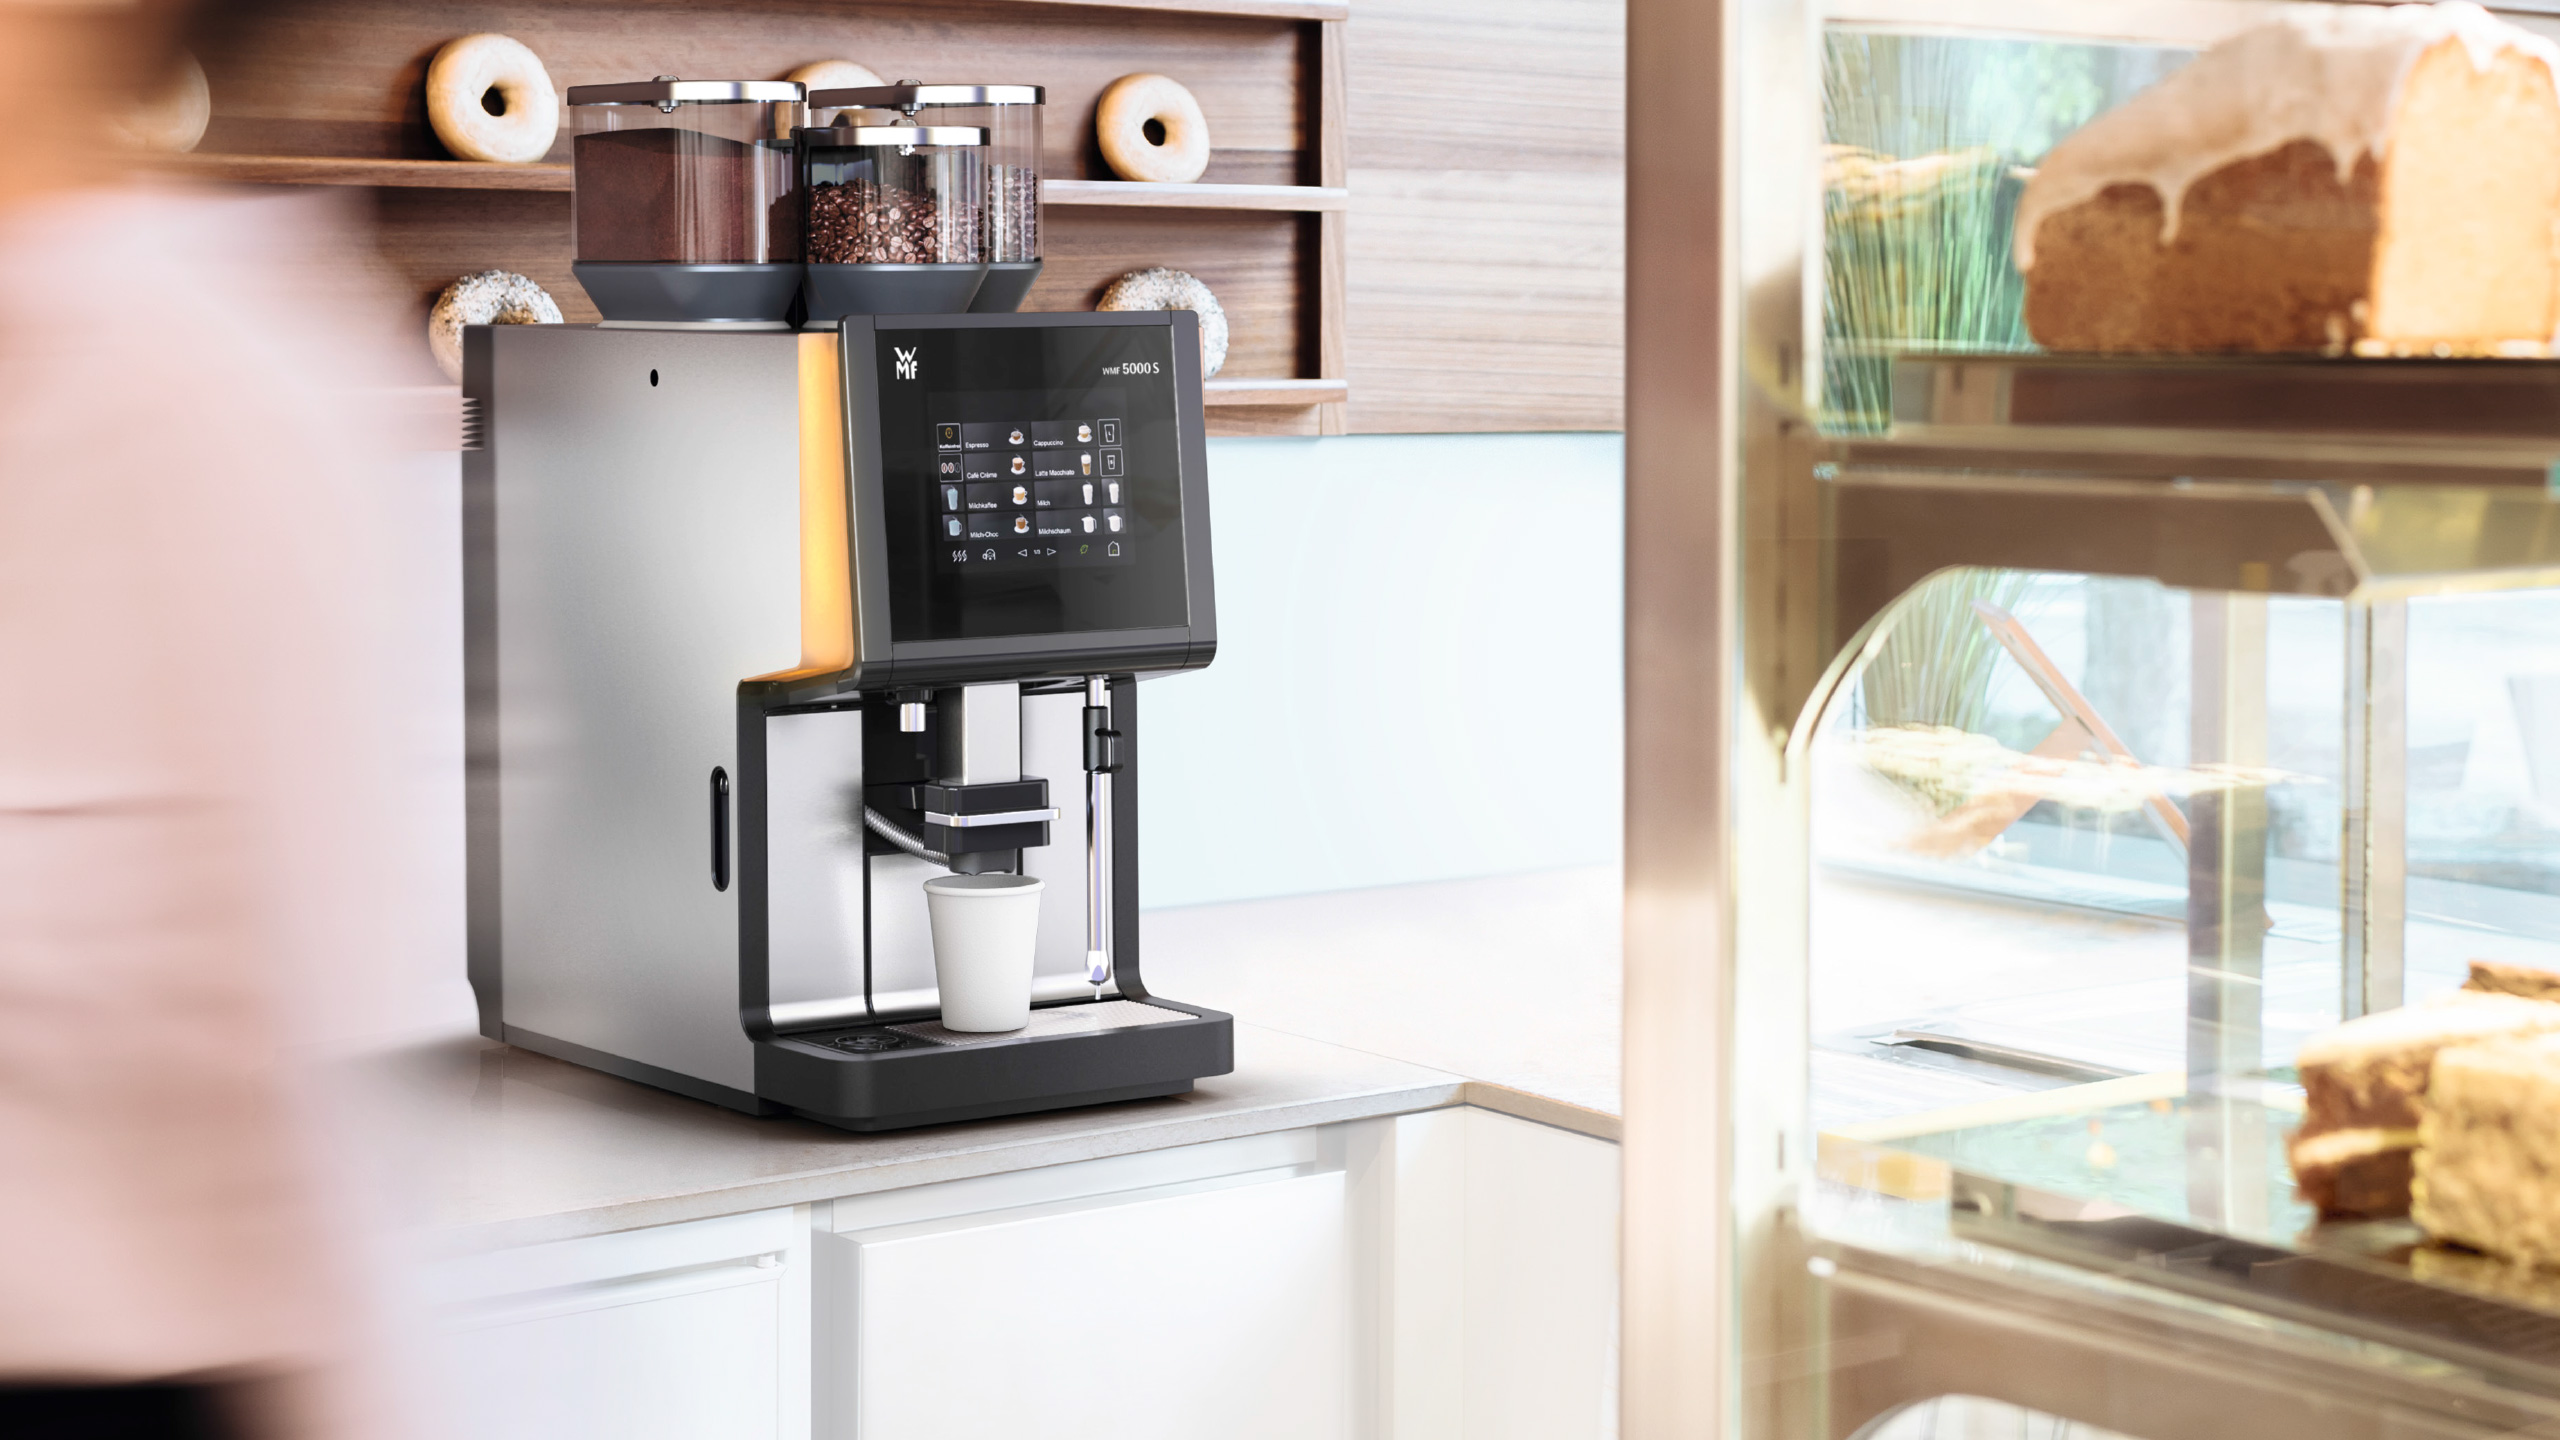 fearsome-wmf-coffee-machine-images-s-to - 465 Office